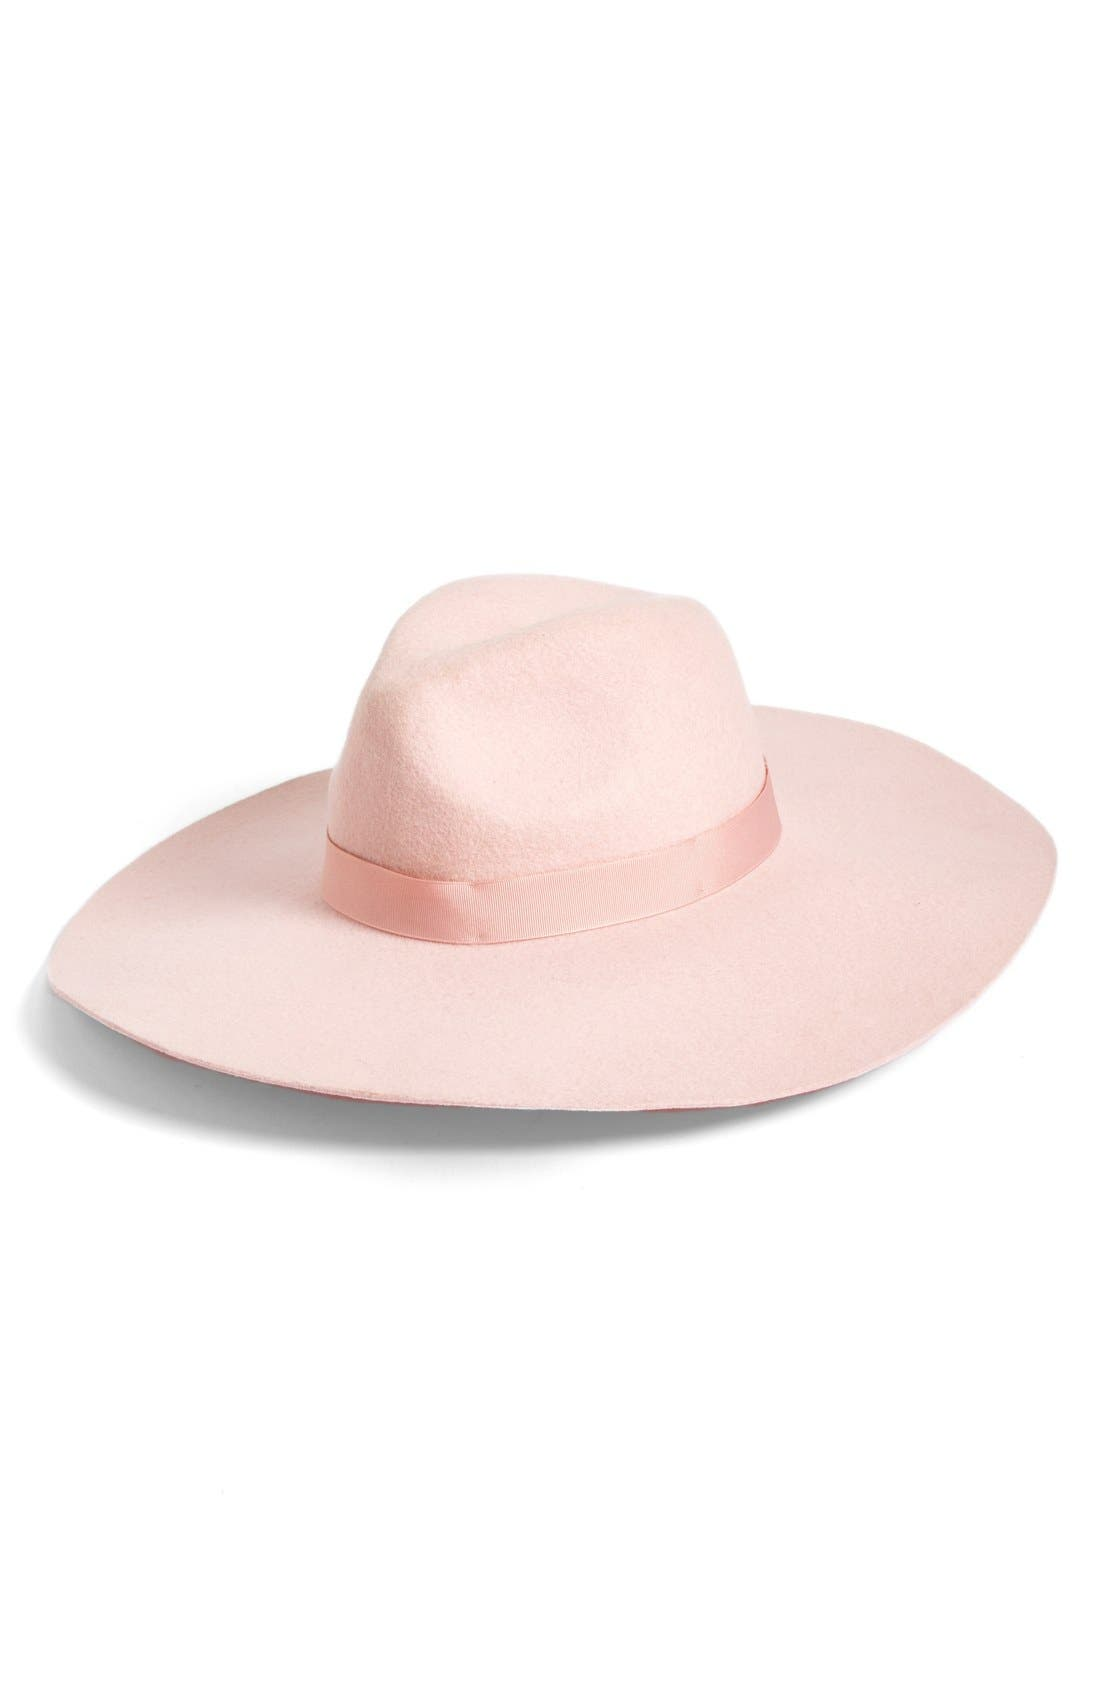 Alternate Image 1 Selected - Lack of Color 'Montana Stardust' Wide Brim Wool Fedora